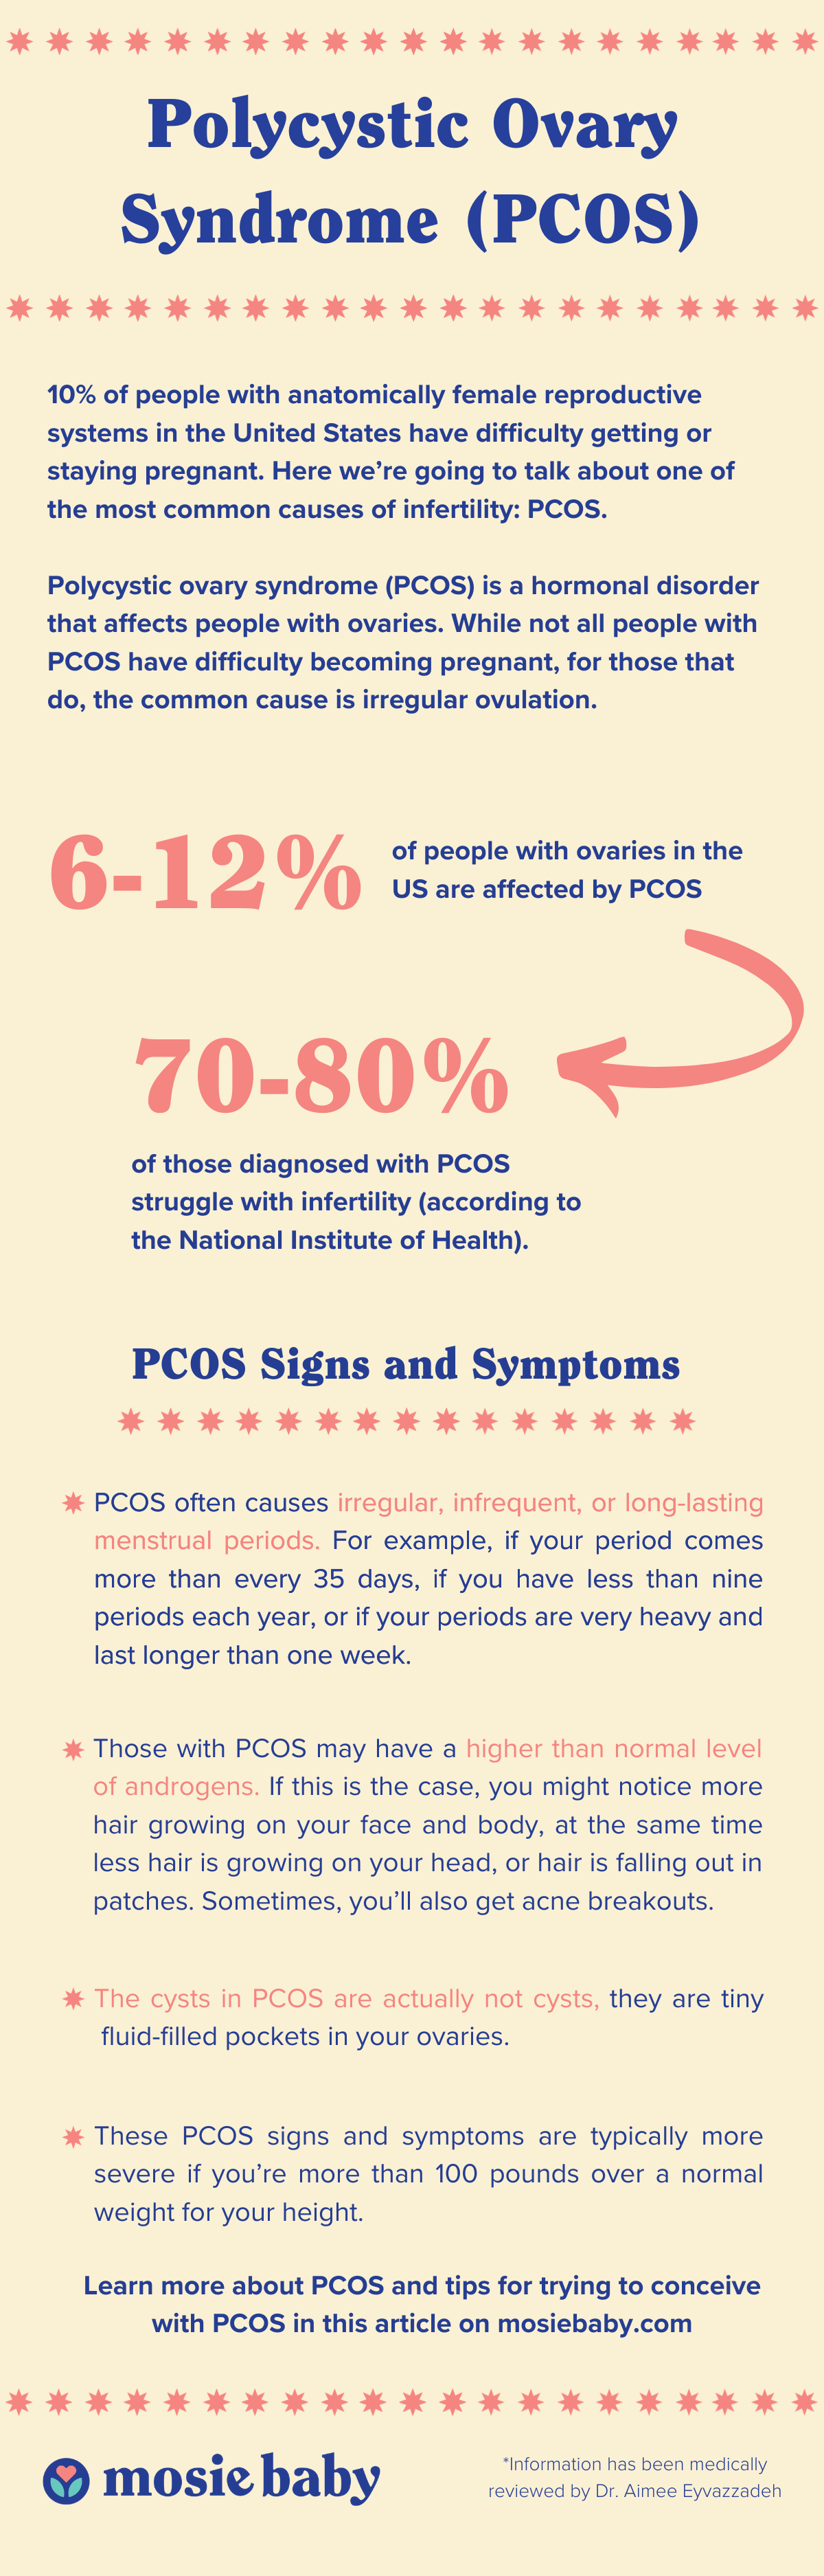 Infographic about PCOS